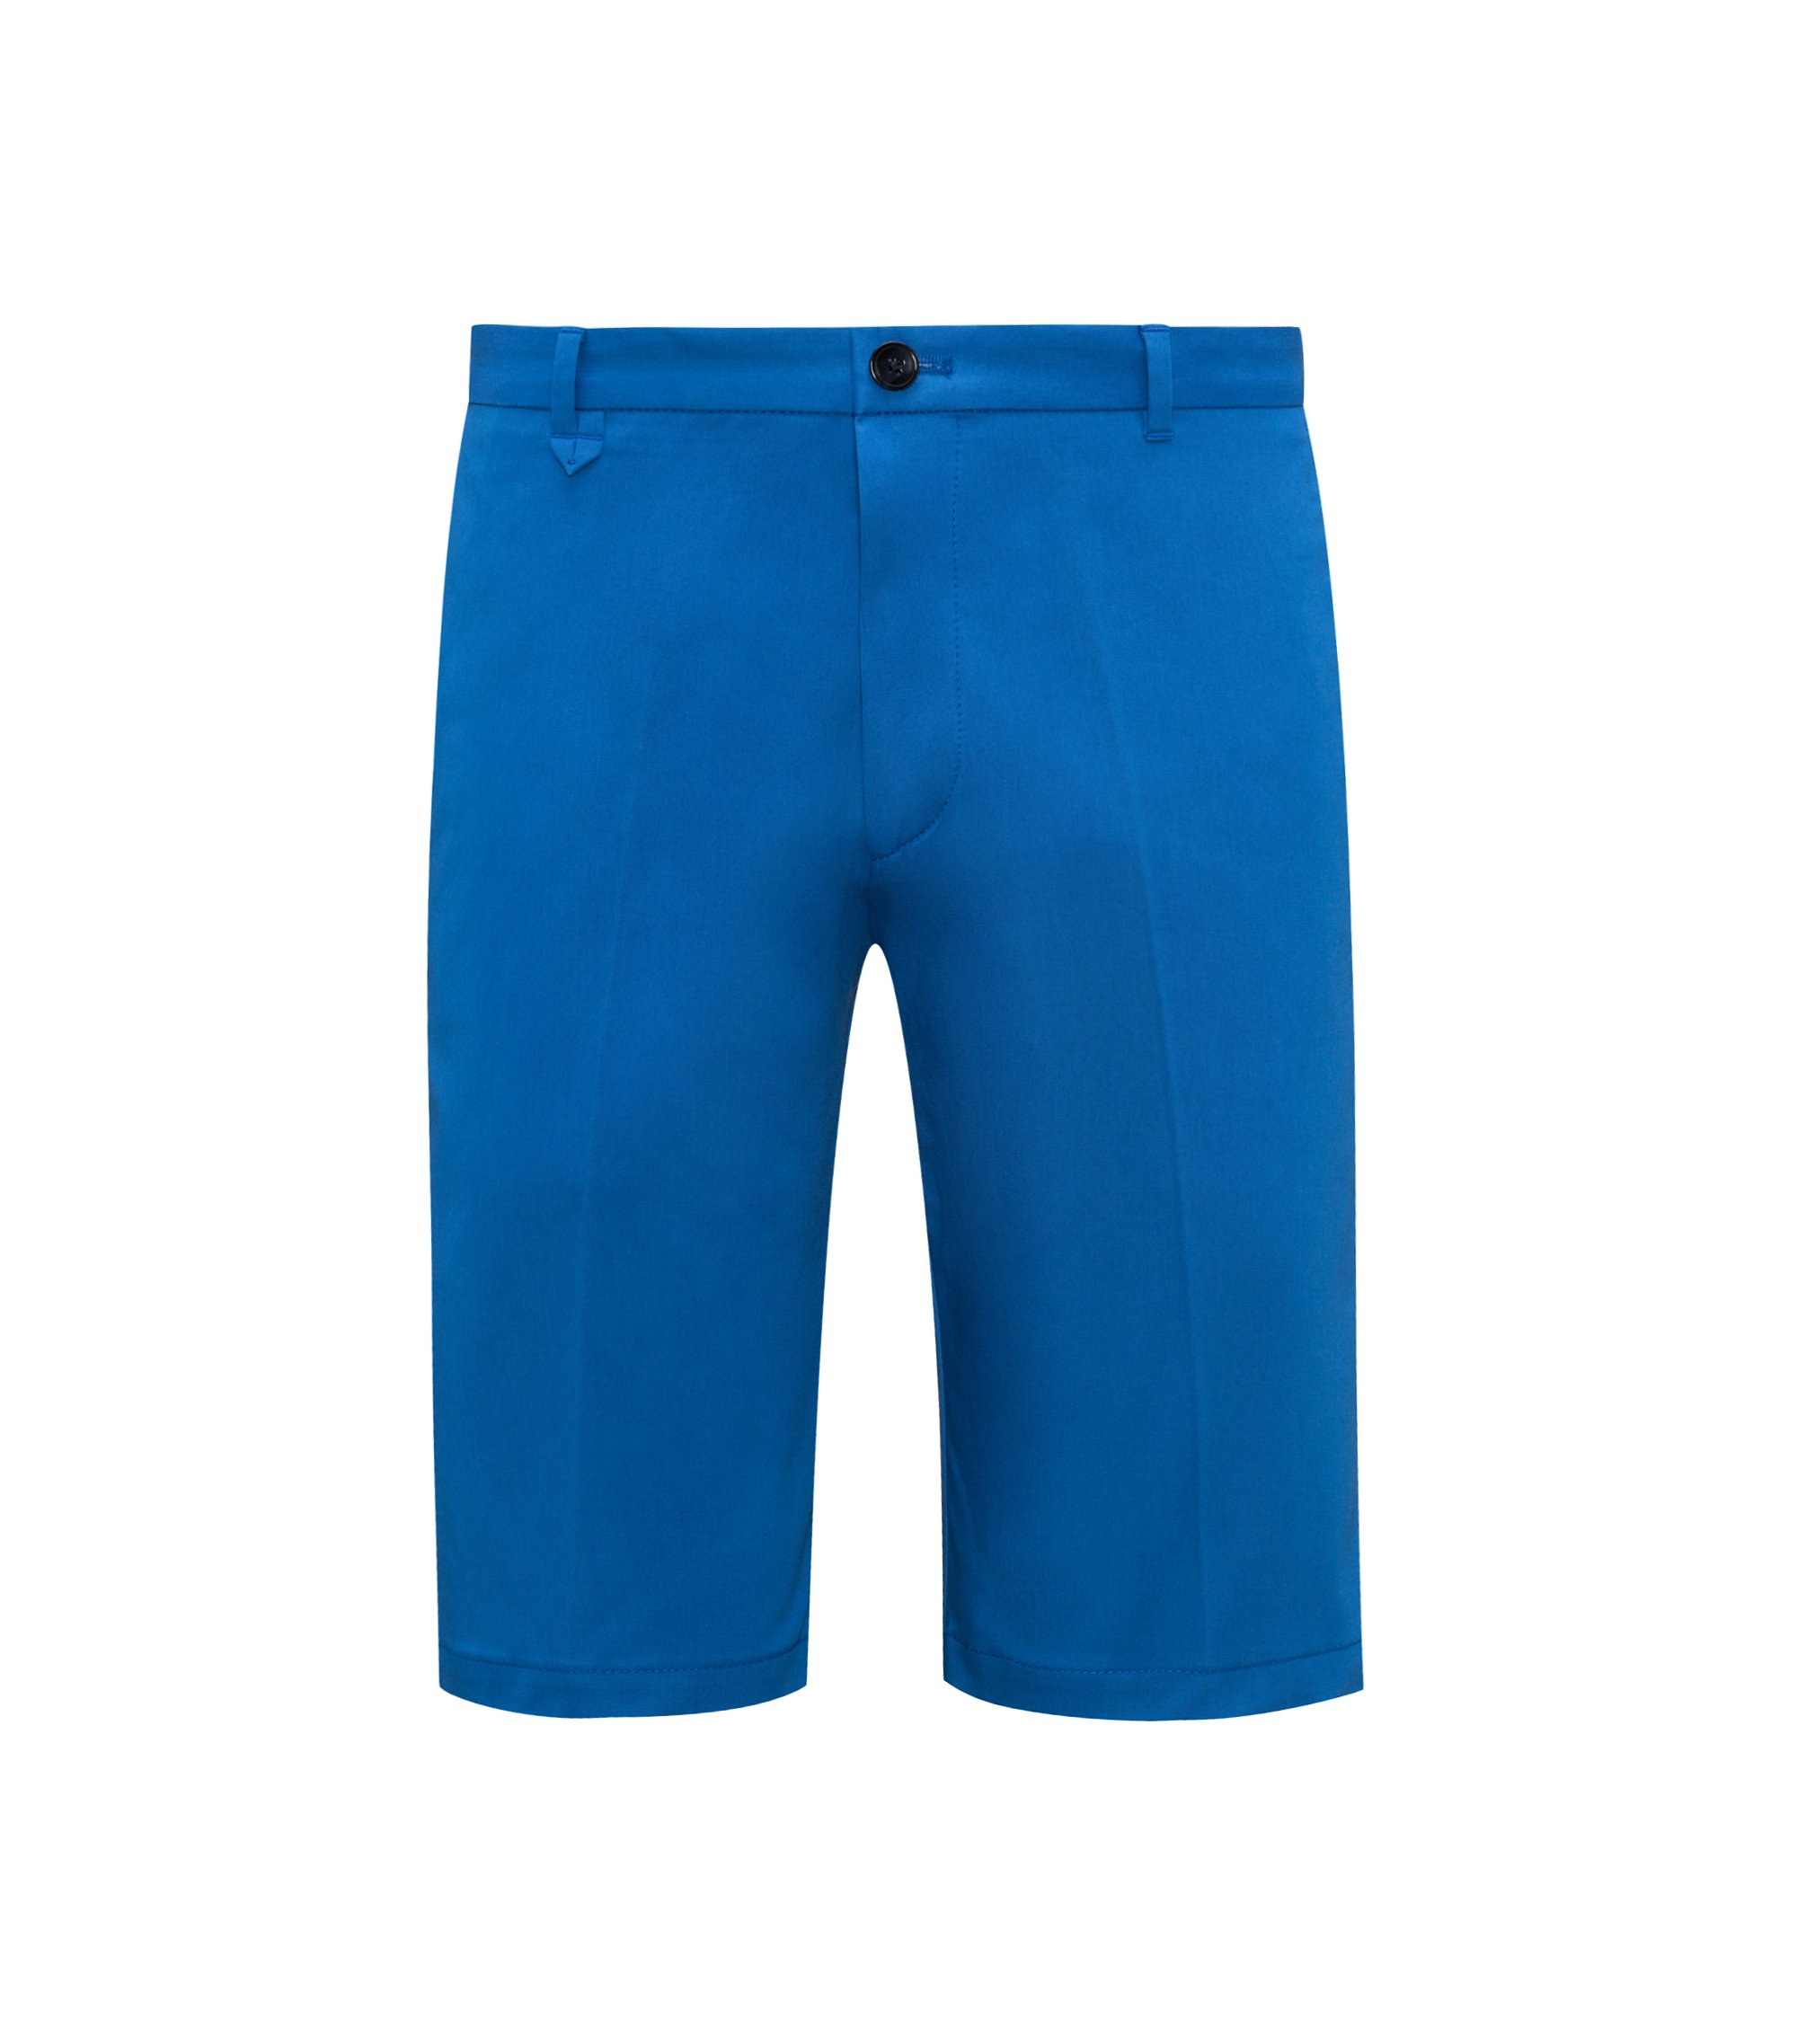 Stretch Cotton Short, Slim Fit | Hano, Open Blue